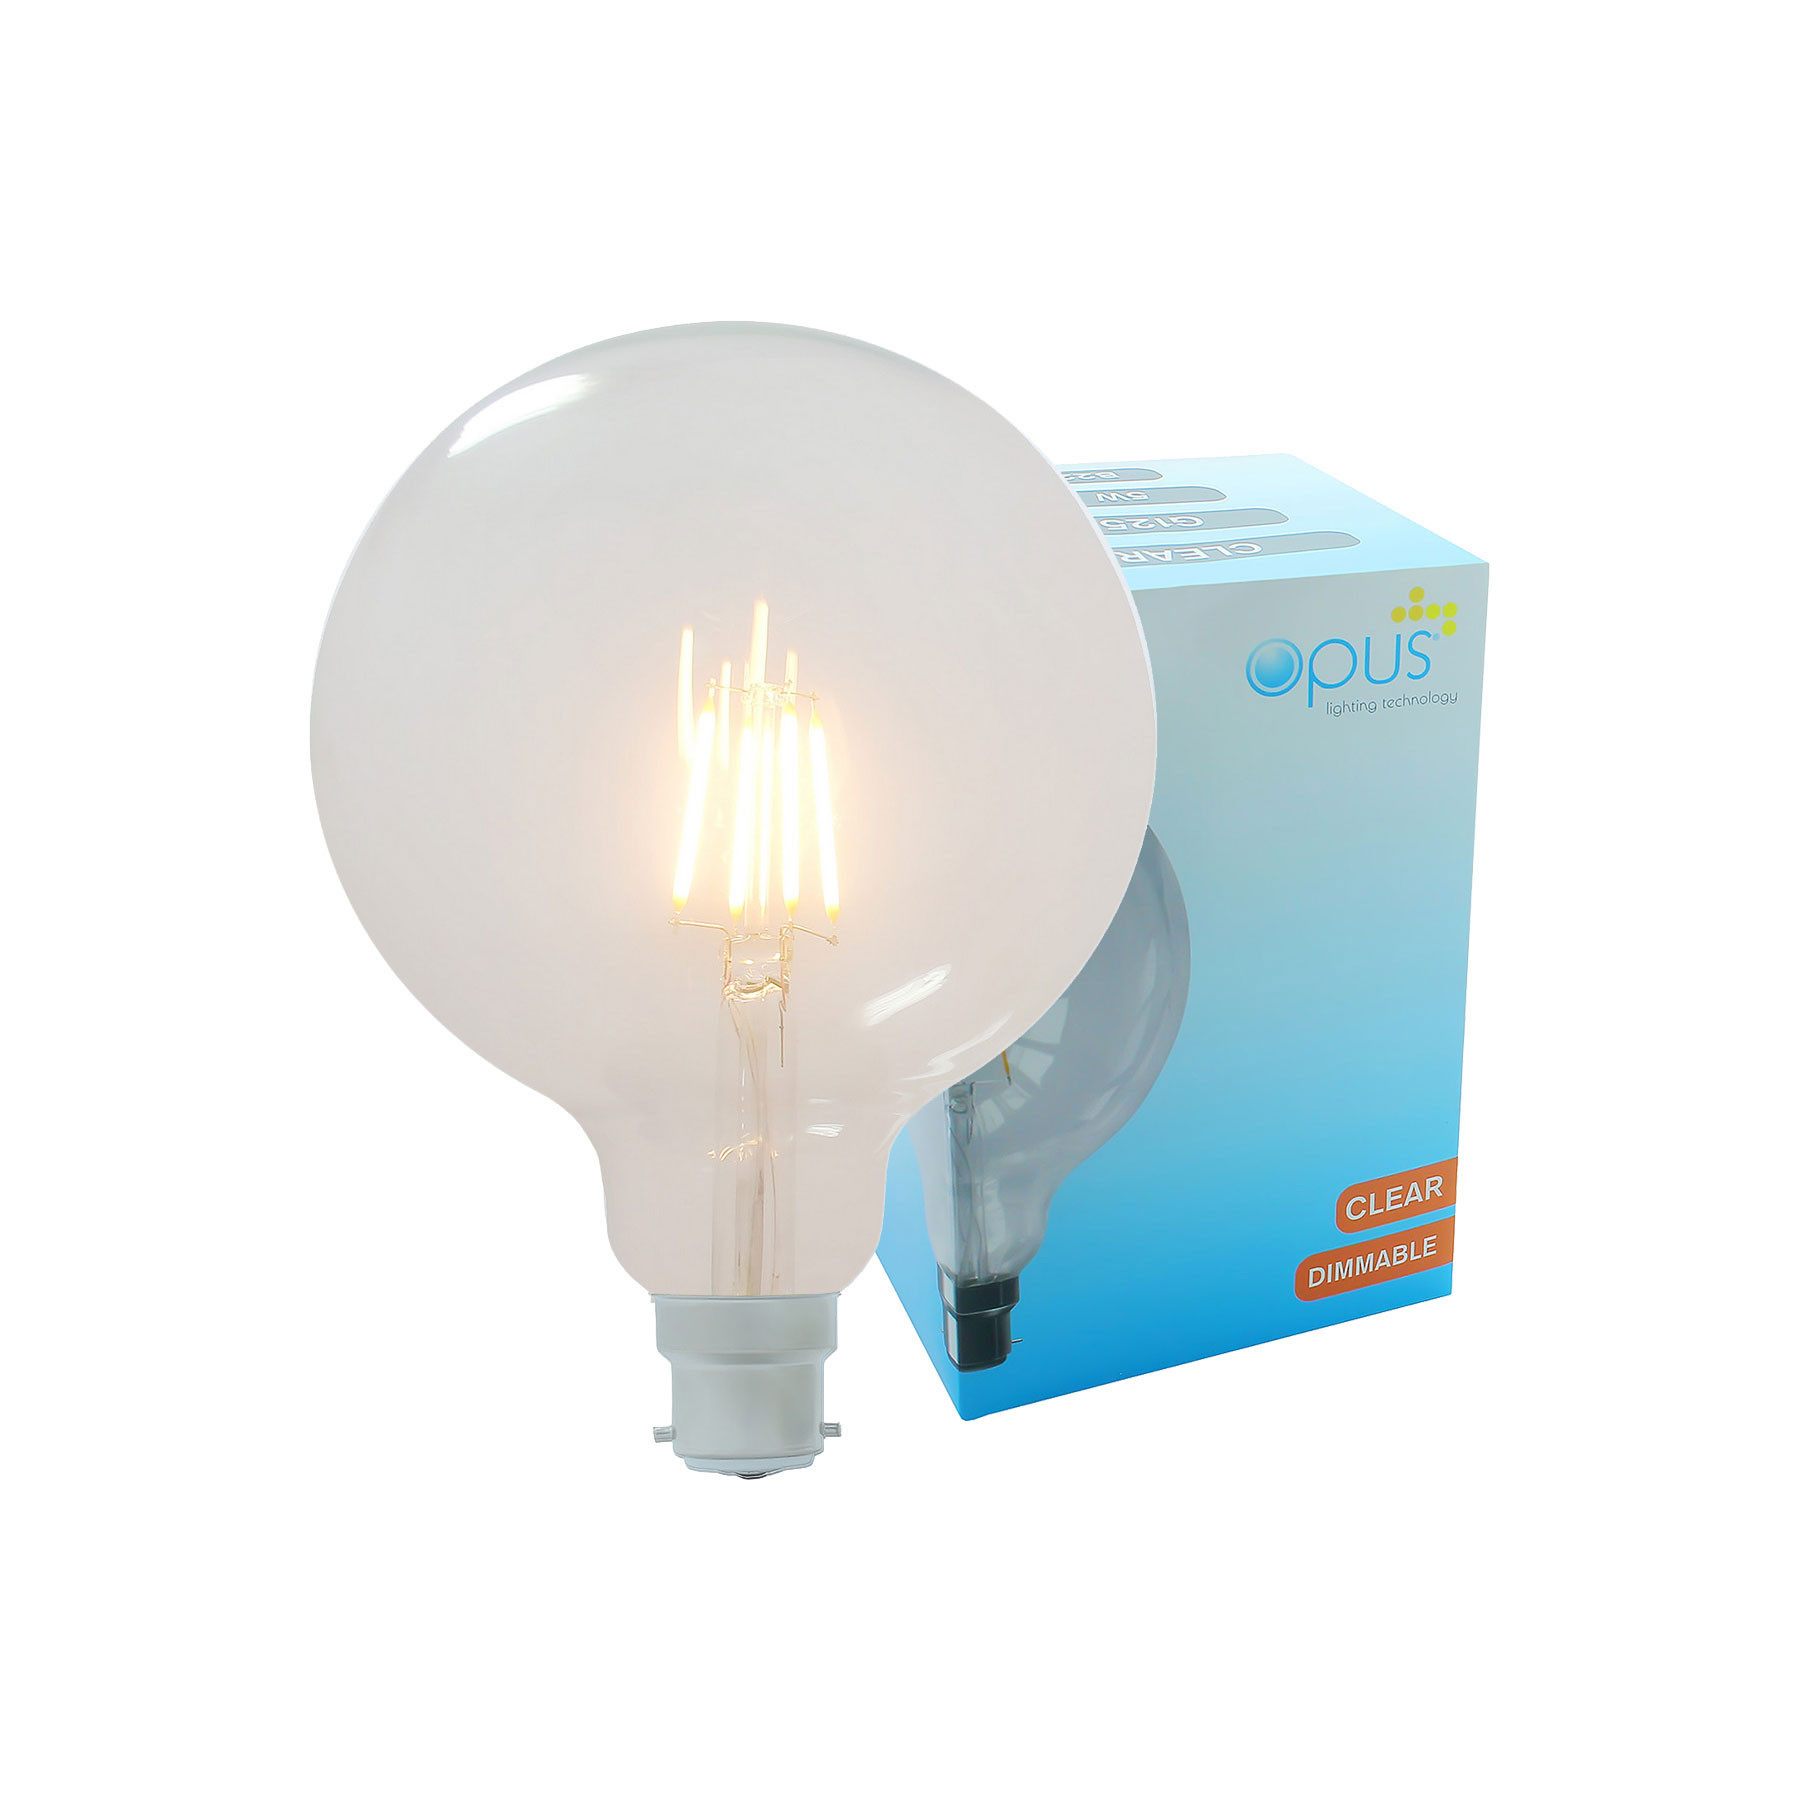 Long Life Clear Eco Halogen Light Bulbs Dimmable Energy Saving Lamps Pack 5 x Opus Candle BC B22 Bayonet Cap Halogen Bulb//Light Bulbs 40 watt = 60 watt Lightbulb